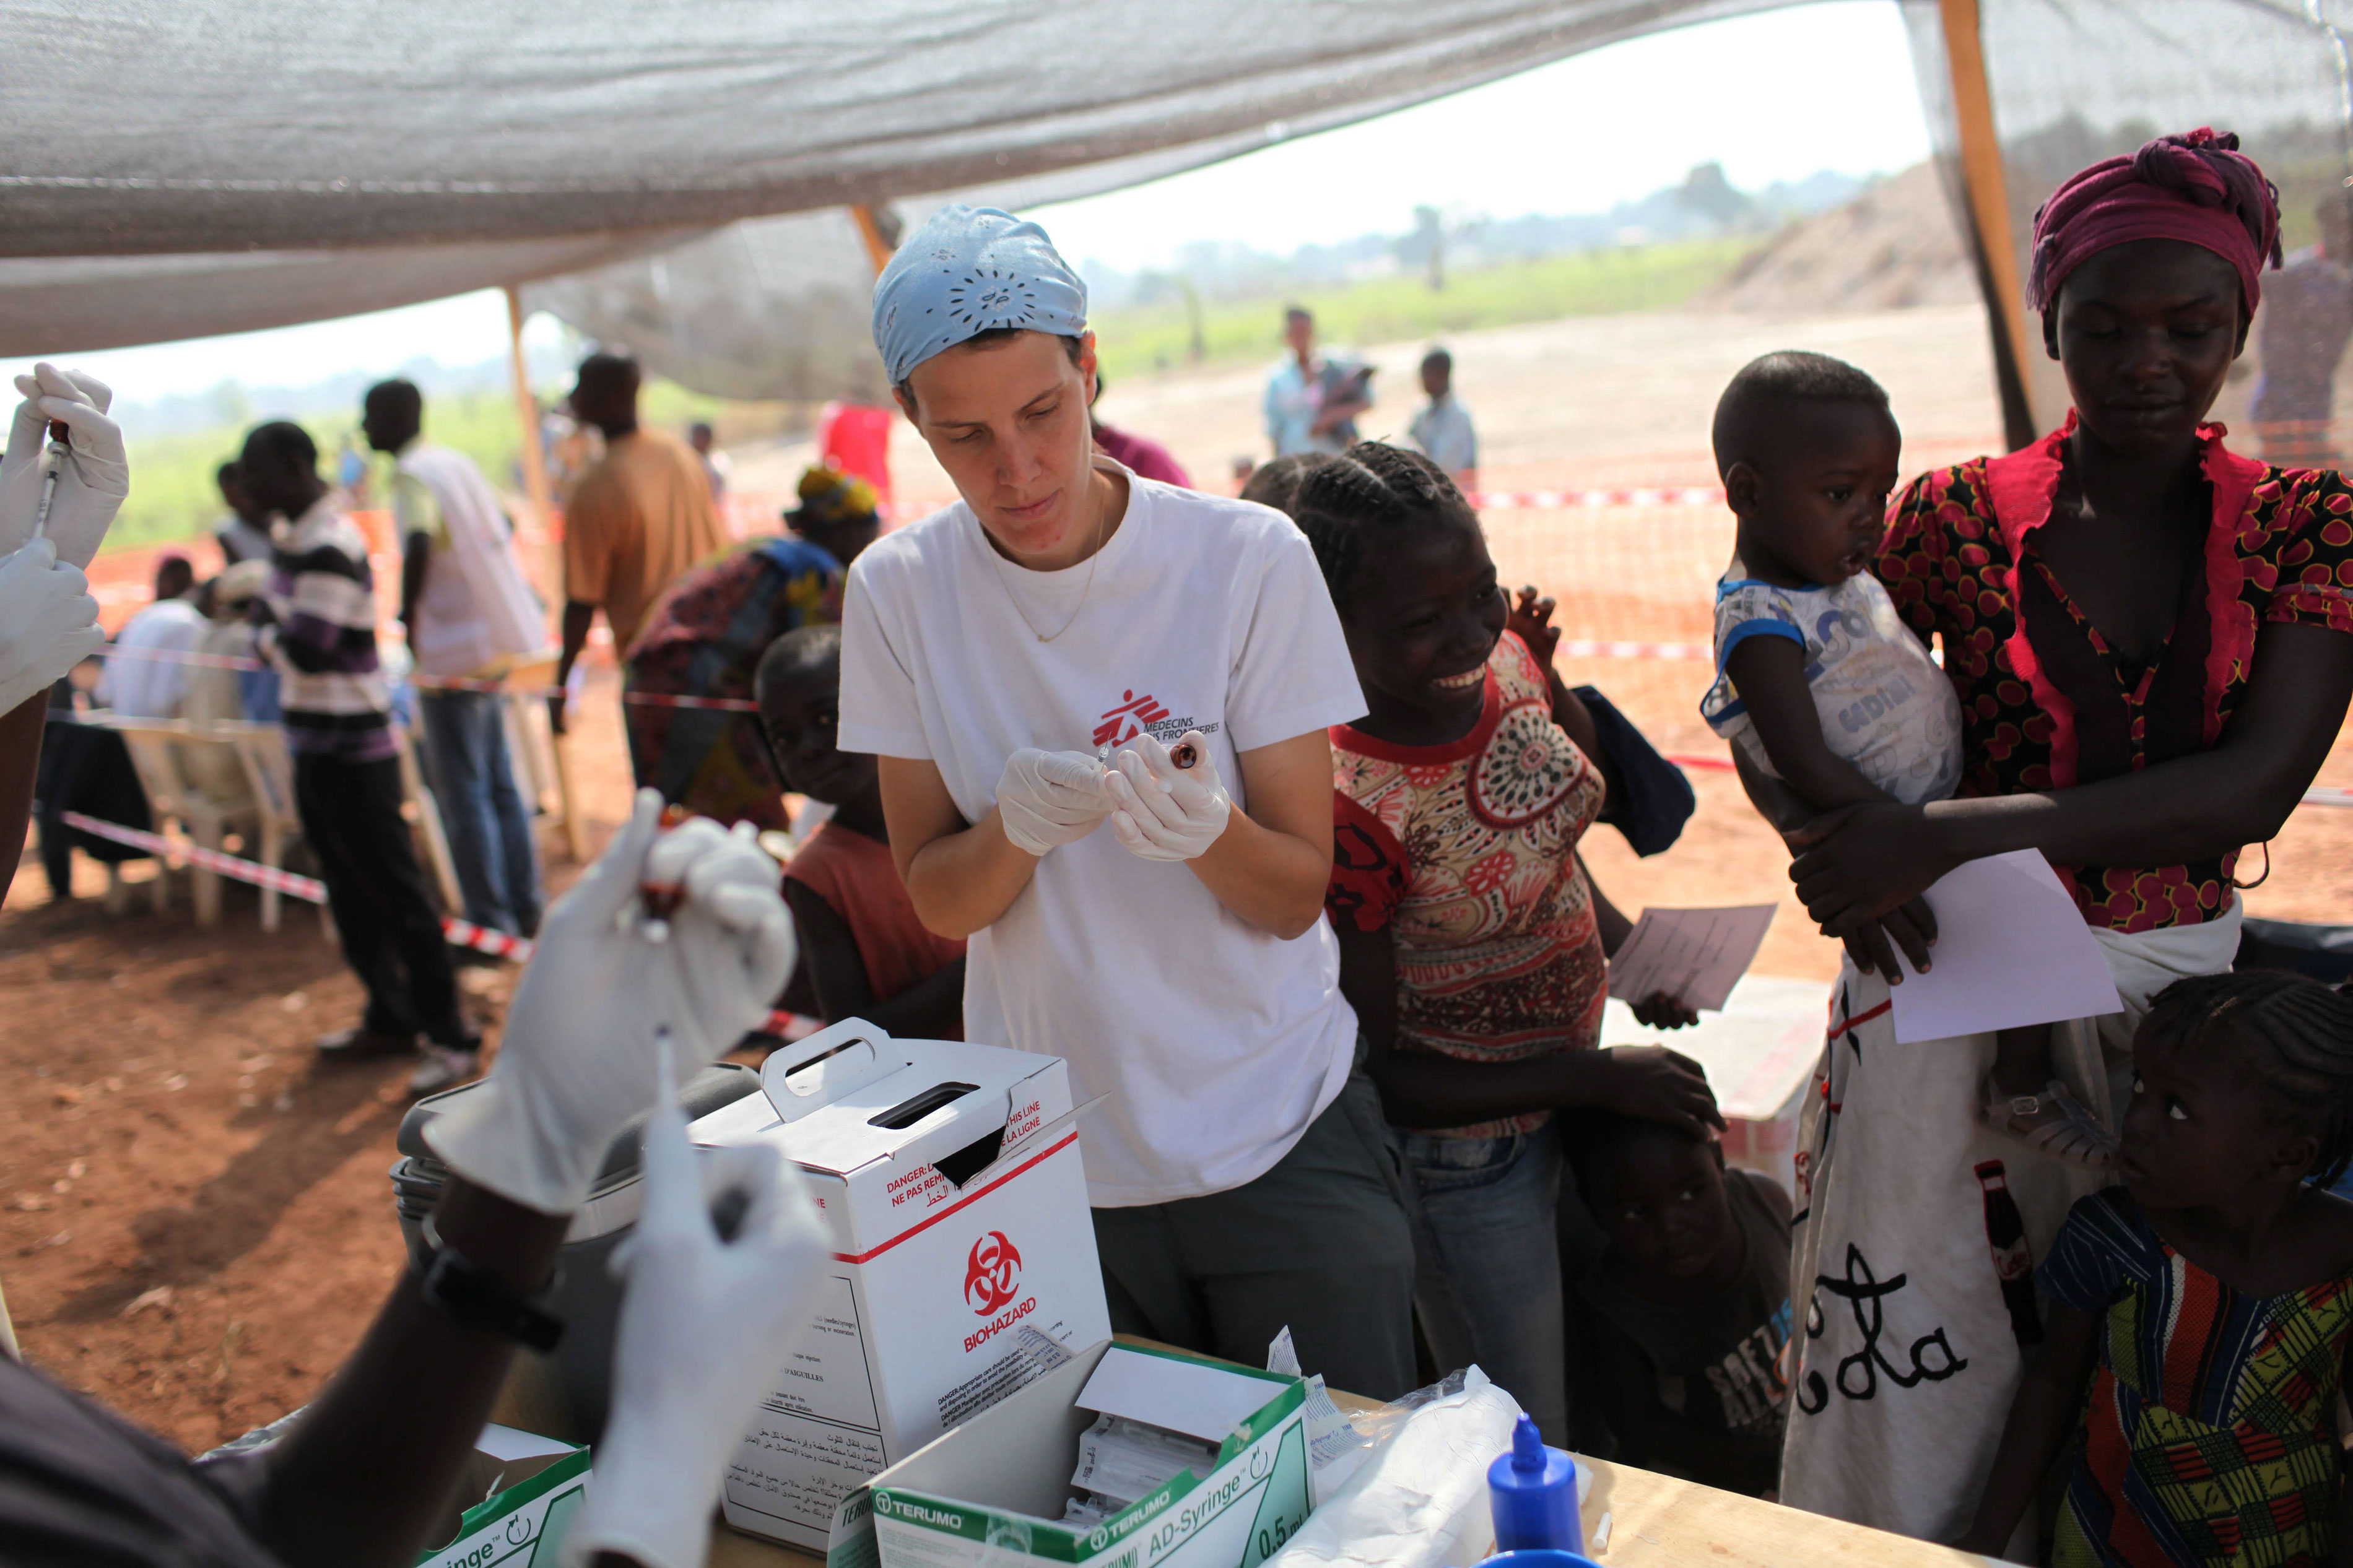 Following confirmation of measles cases among children in several camps for internally displaced people in Bangui, Central African Republic, MSF is vaccinating 68,000 children in five camps in the city in order to prevent an outbreak.